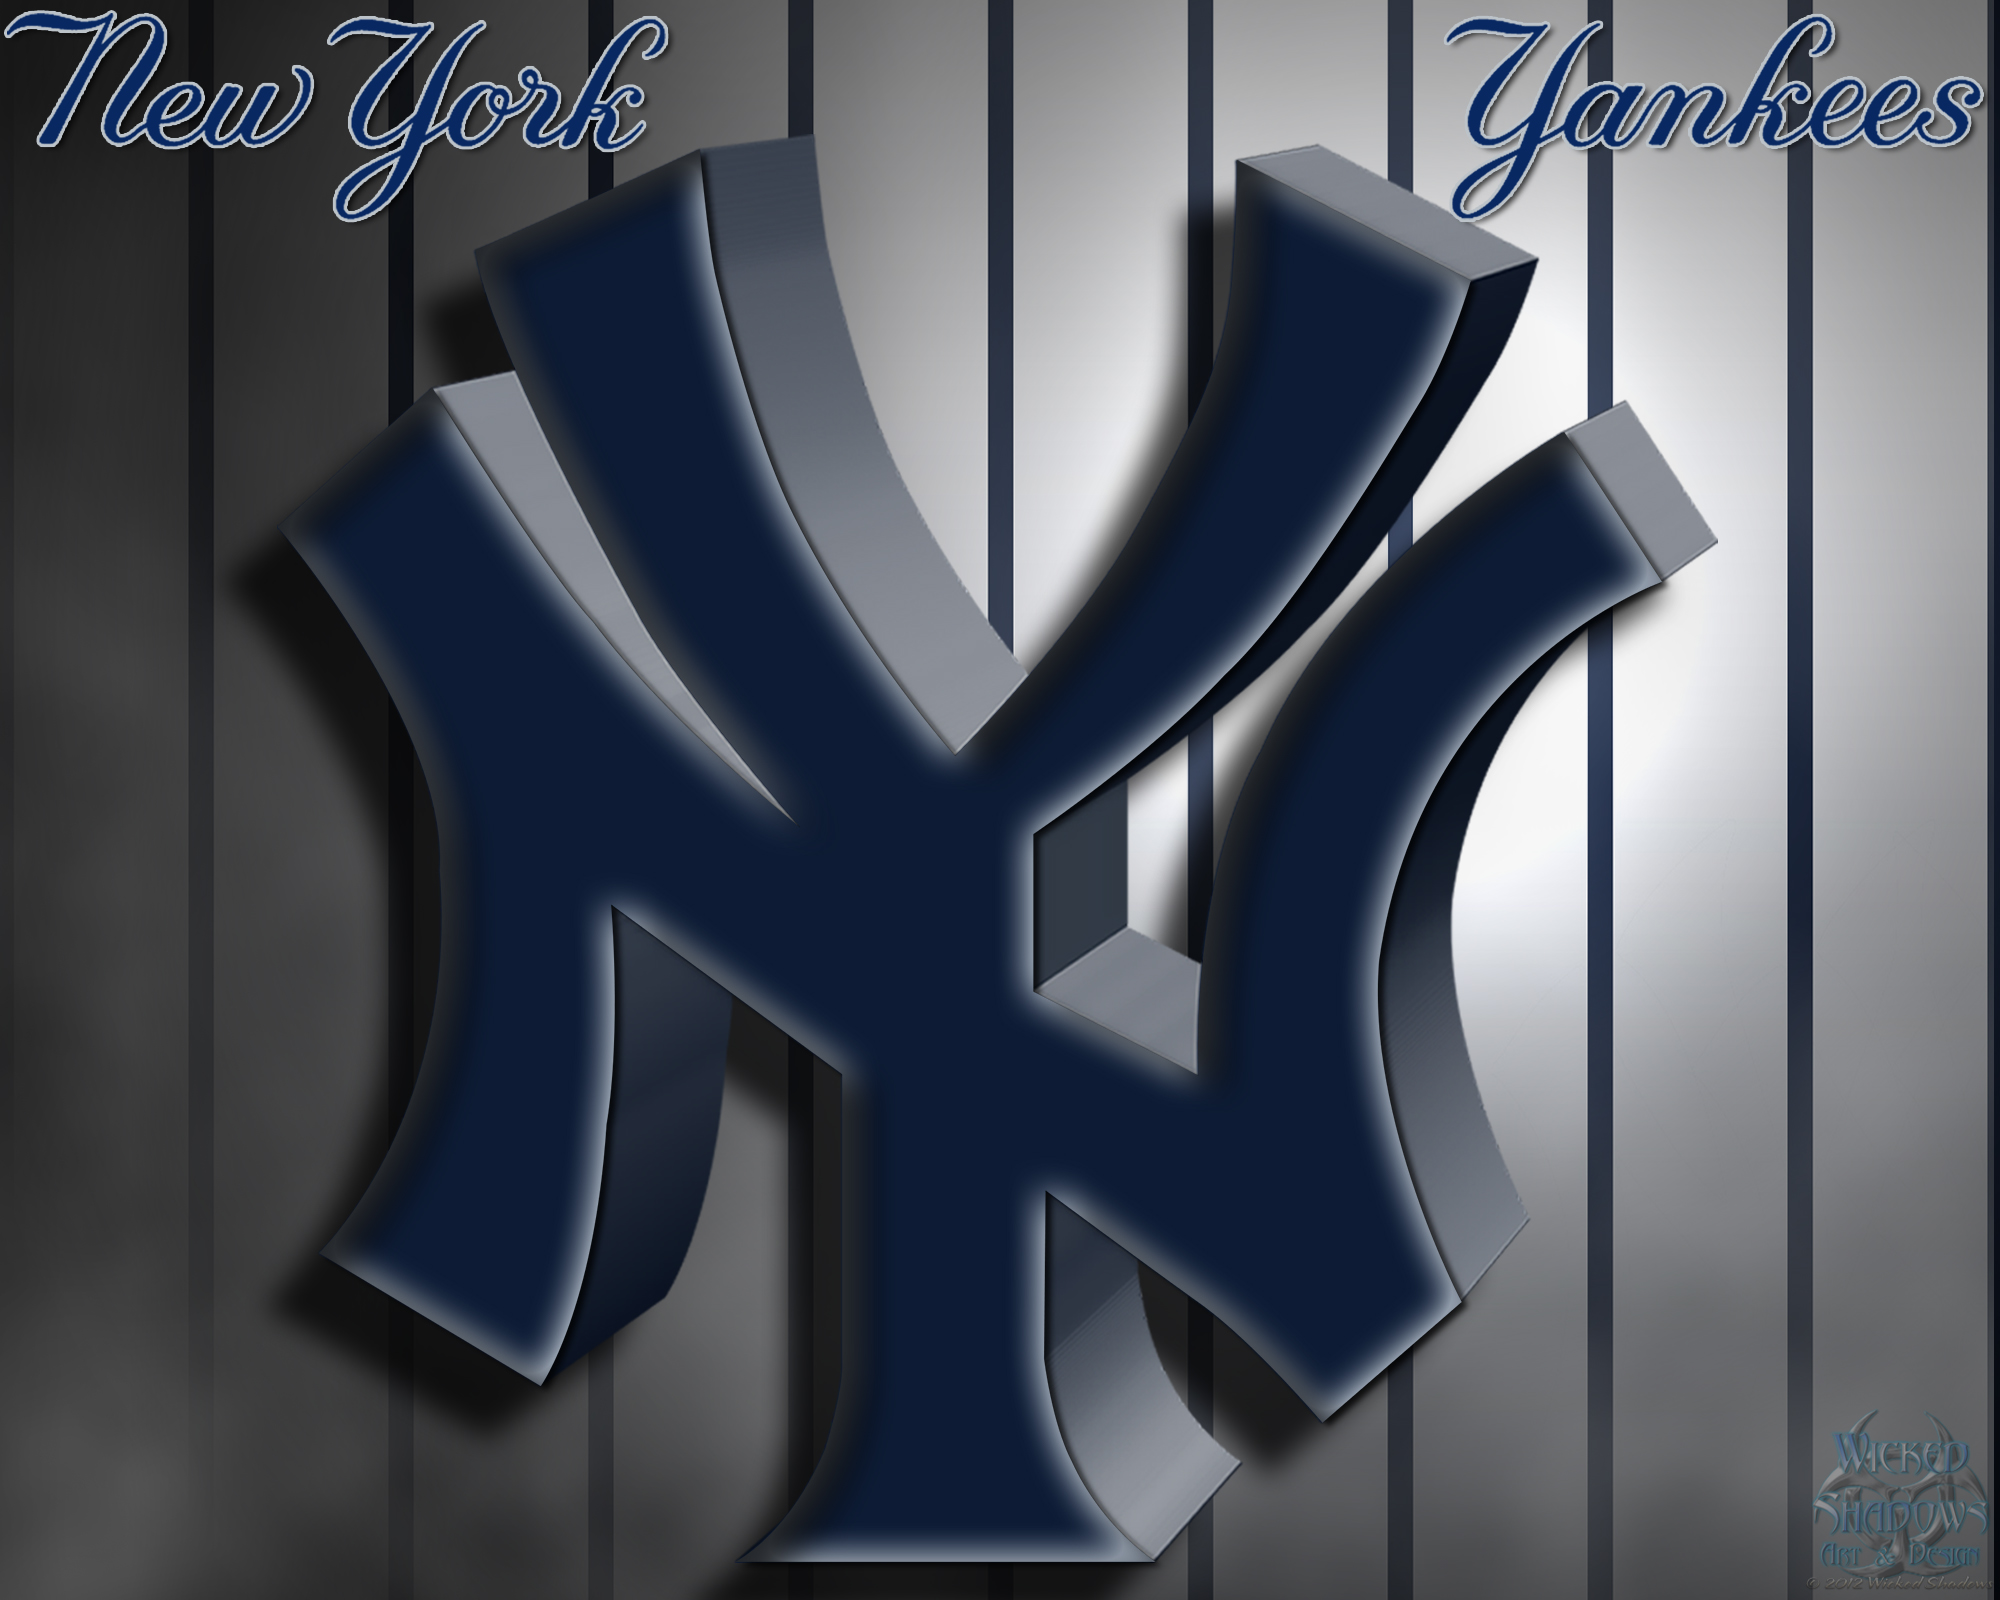 NY Yankees IPhone Wallpaper